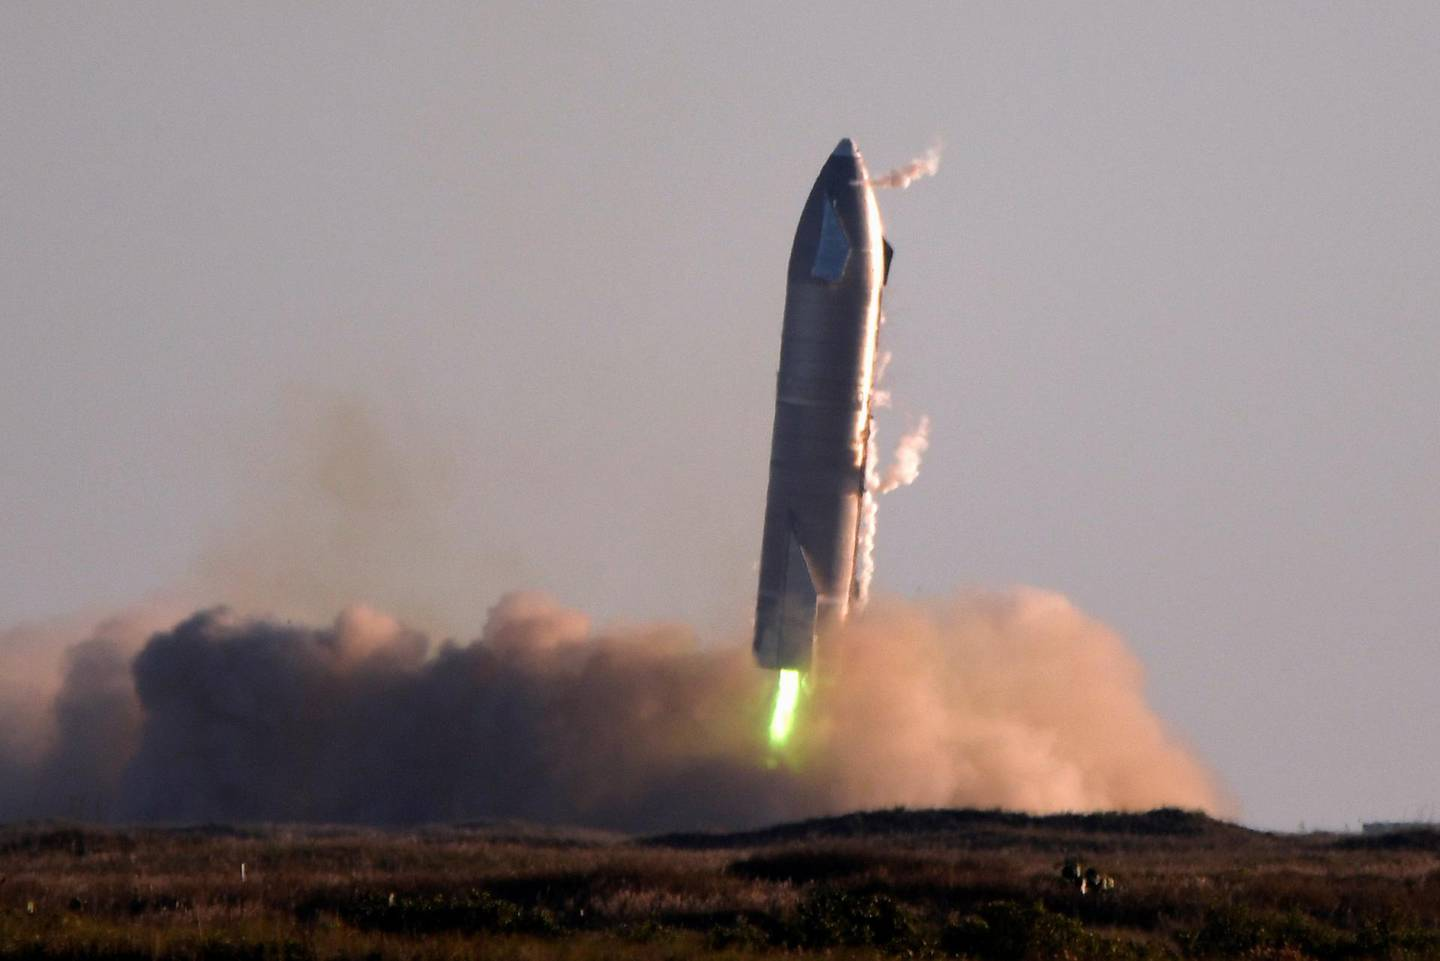 SpaceX's first super heavy-lift Starship SN8 rocket during a return-landing attempt after it launched from their facility on a test flight in Boca Chica, Texas U.S. December 9, 2020. REUTERS/Gene Blevins